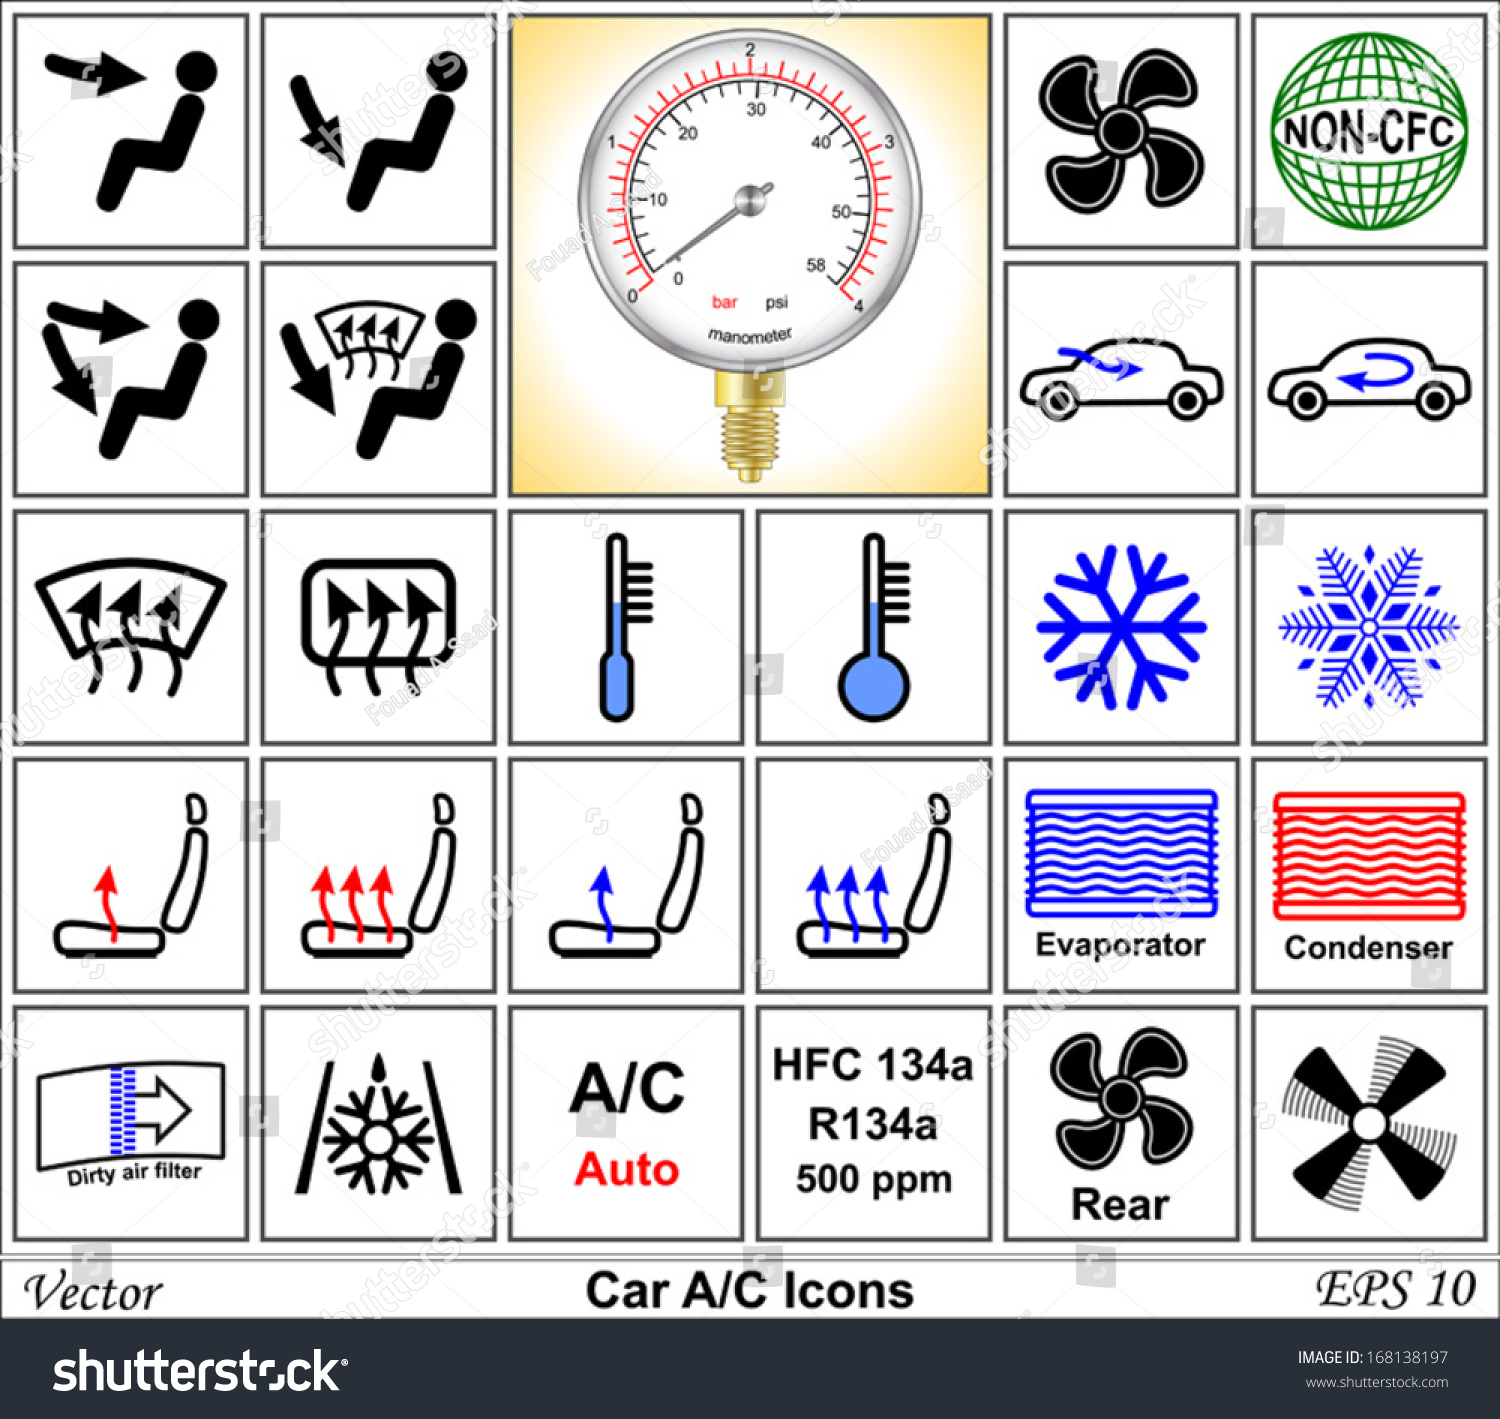 Car Ac Vector Icons Stock Vector Royalty Free 168138197 Shutterstock